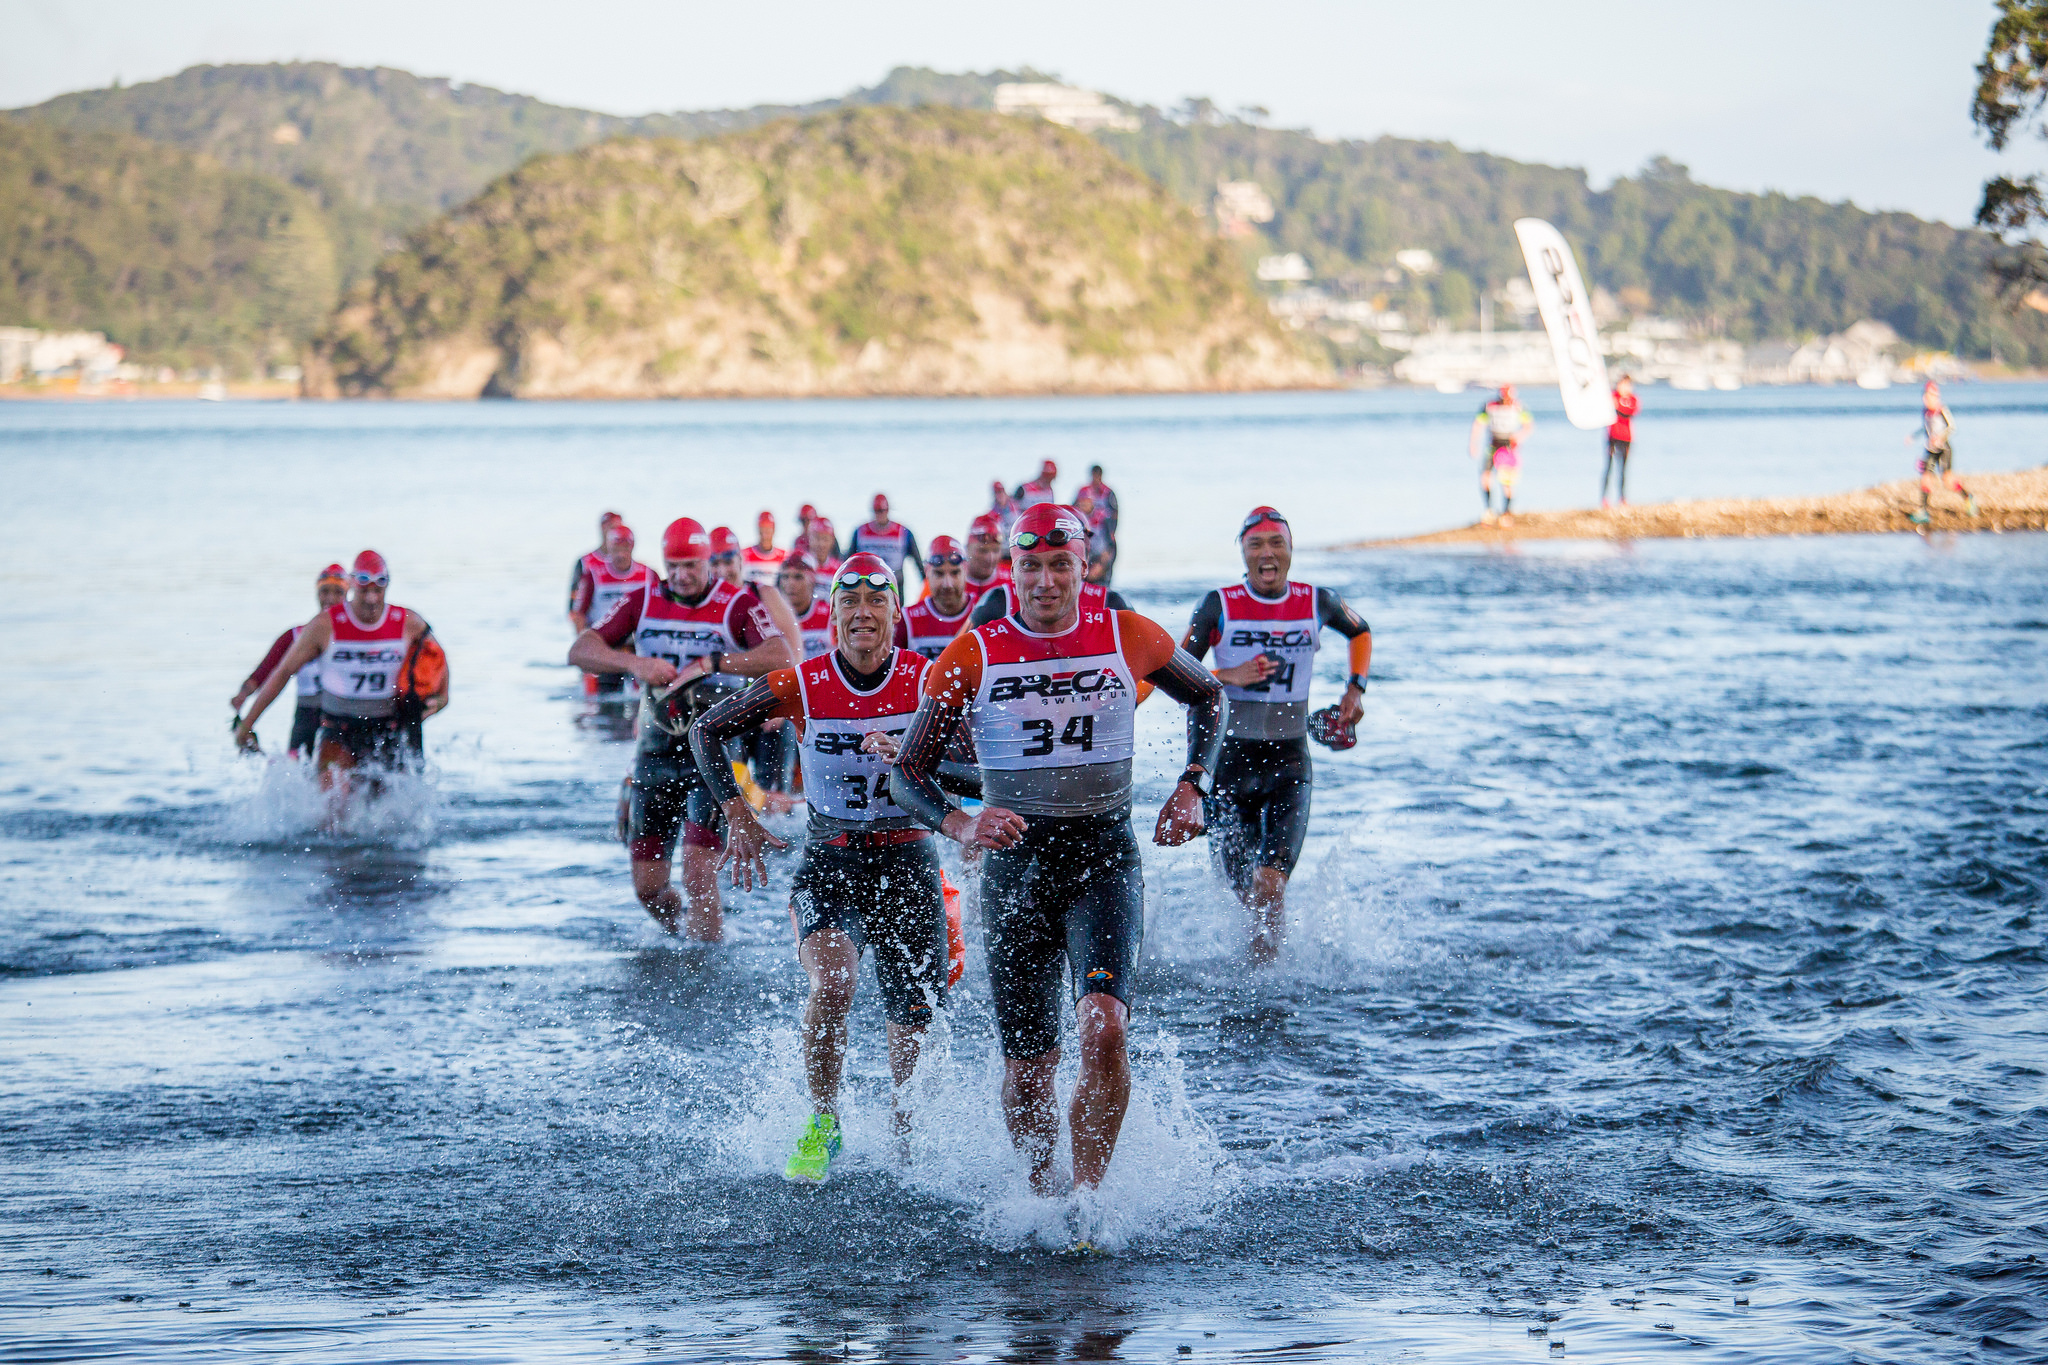 Register for Breca Bay of Islands 2019 - 14th April 2019, 37.3km swimrun. Sign up now to enjoy our early-bird rates!Early-bird 1: NZ$720 per teamEarly-bird 2: NZ$740 per teamEarly-bird 3: NZ$760 per teamLate registration: NZ$780 per teamEntry fees are for a team of two+3.75% Trumin processing fee for all tiers; includes GST